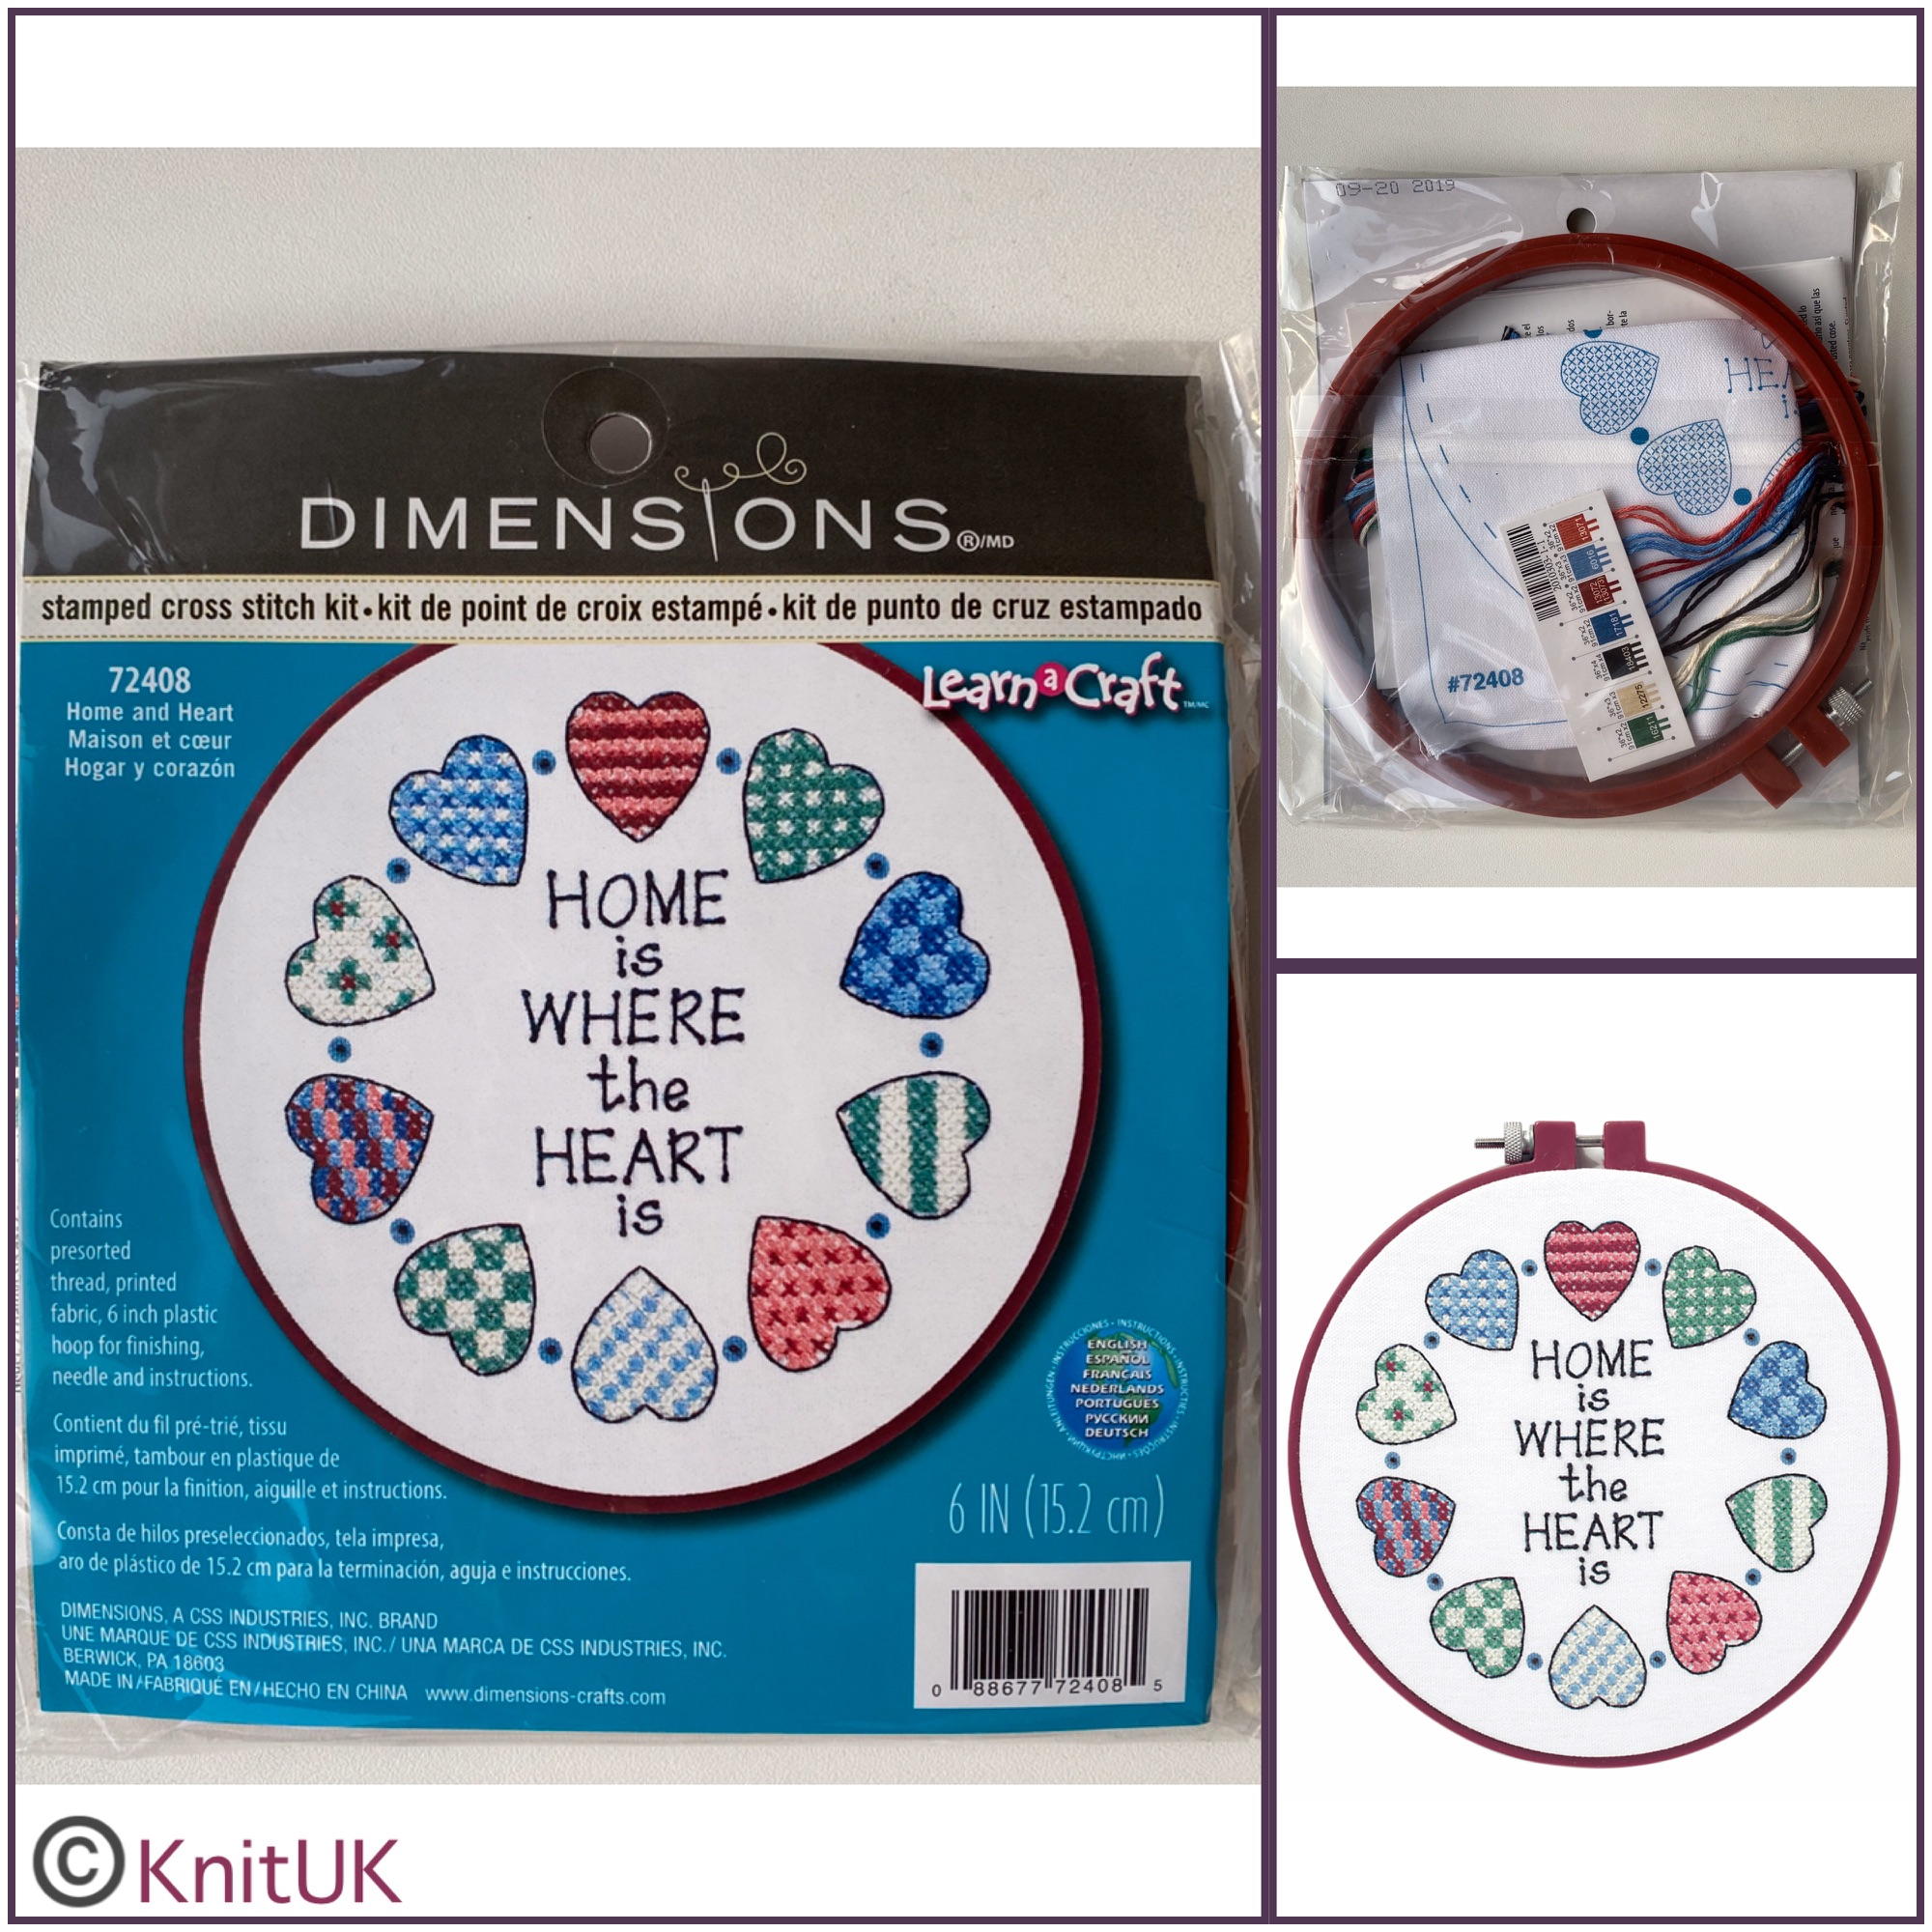 Dimensions Home and Heart stamped cross stitch kit and hoop